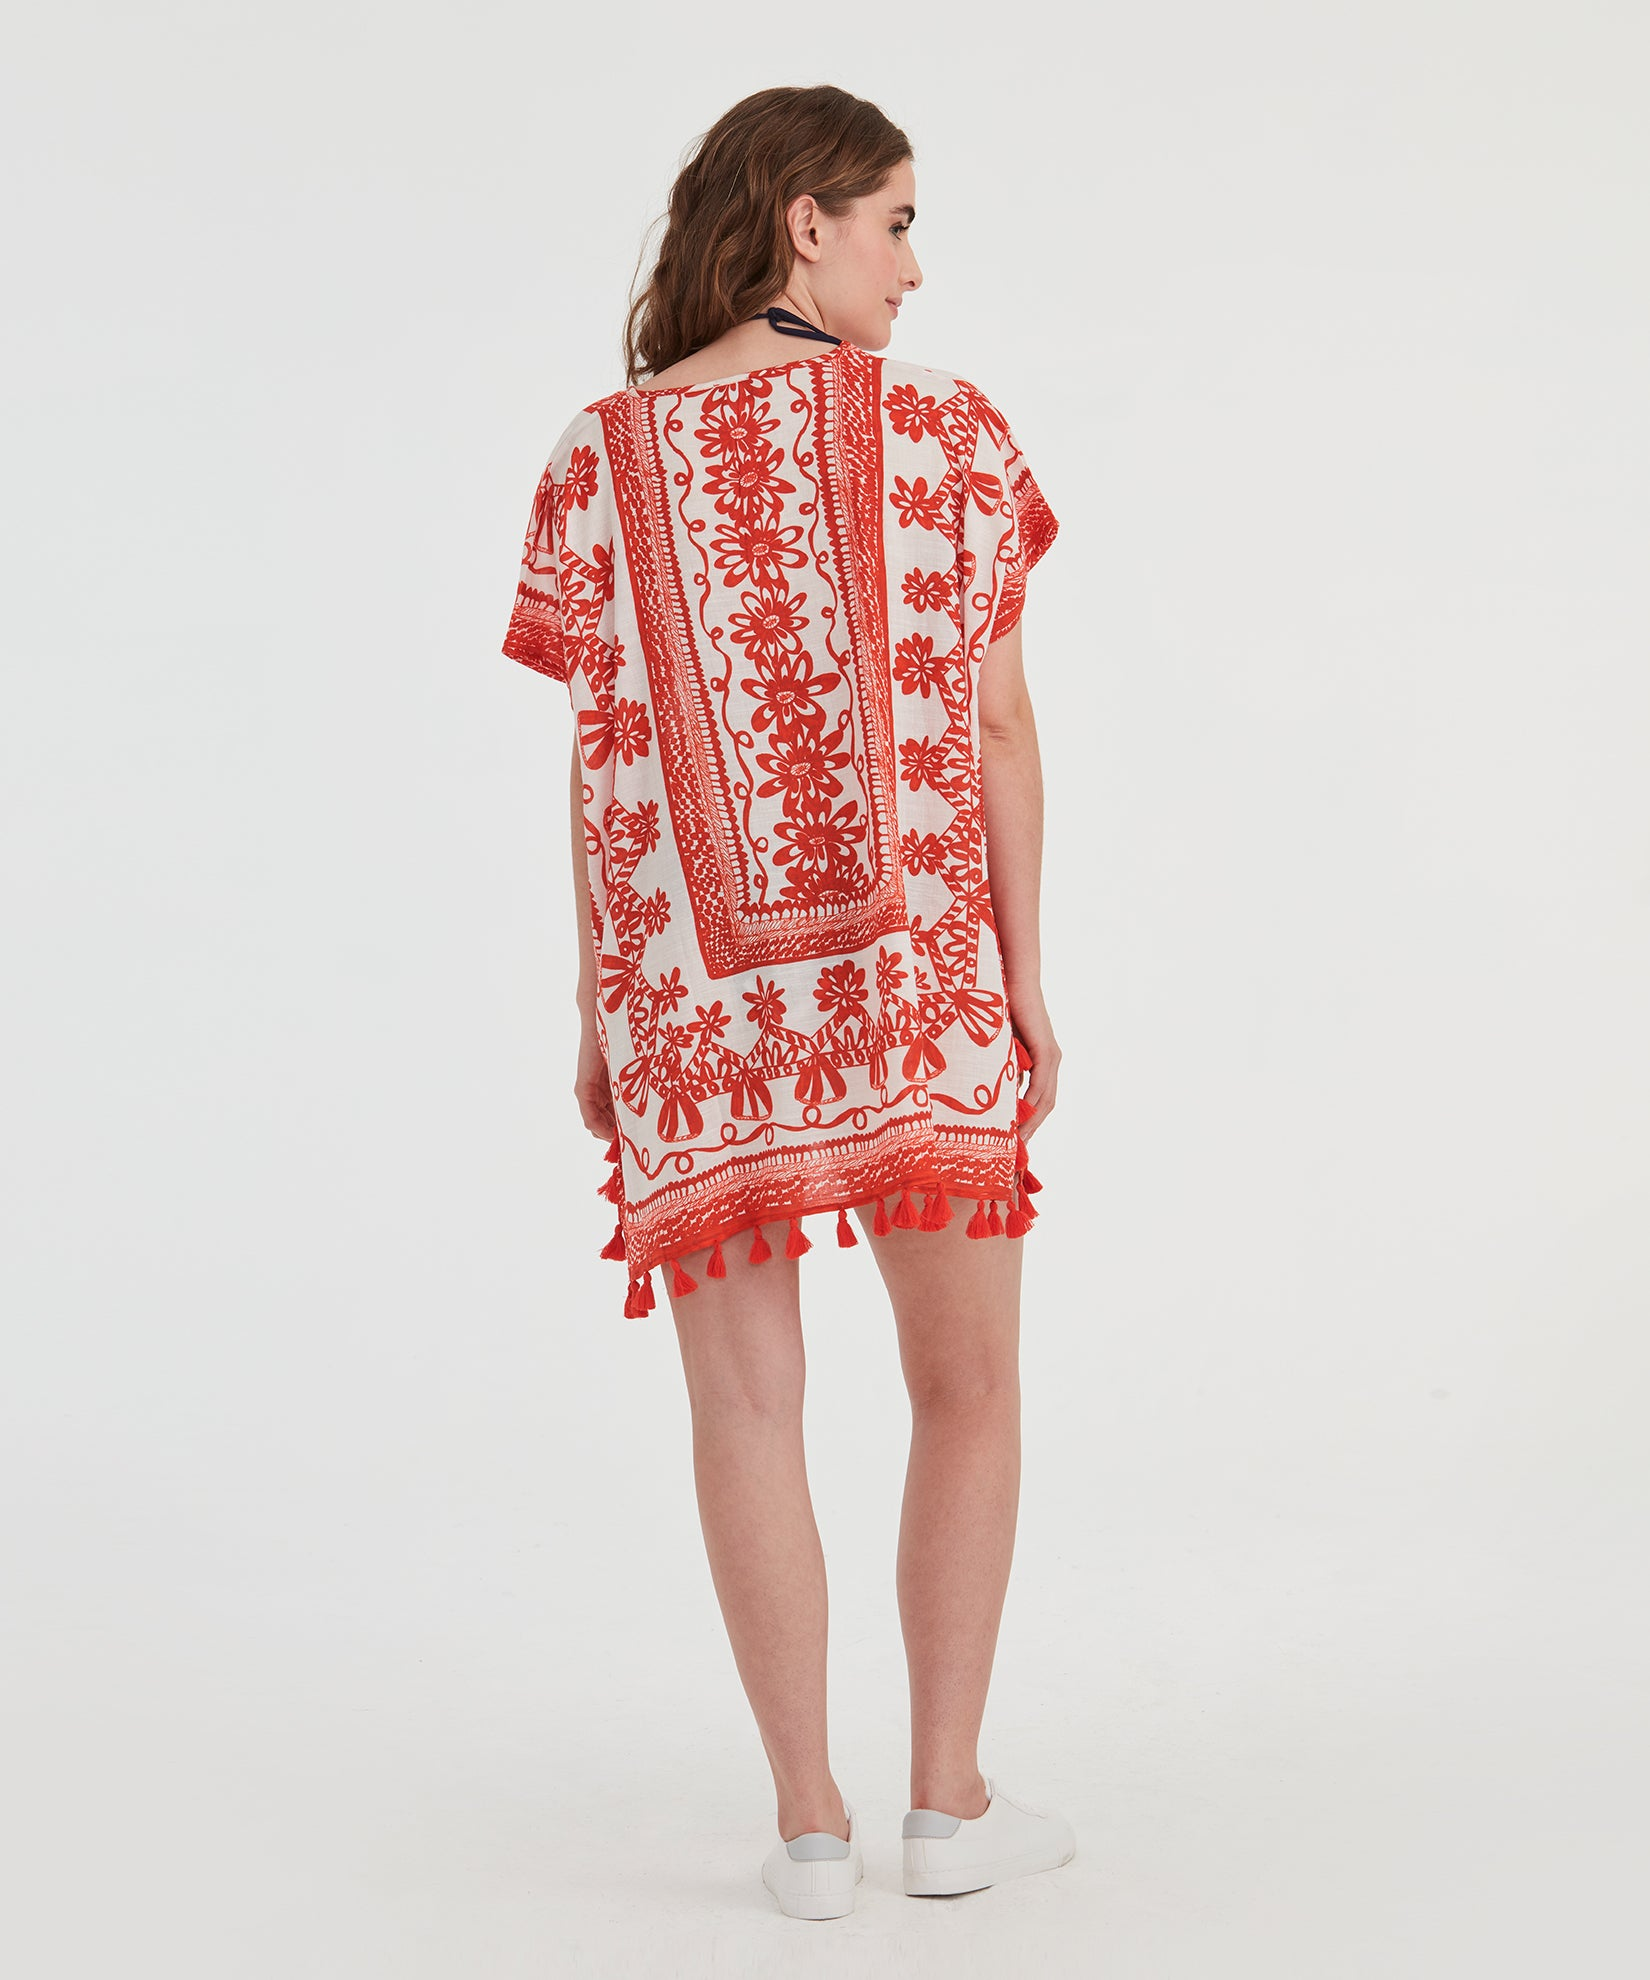 Sketchy Scroll Caftan - Sketchy Scroll Caftan